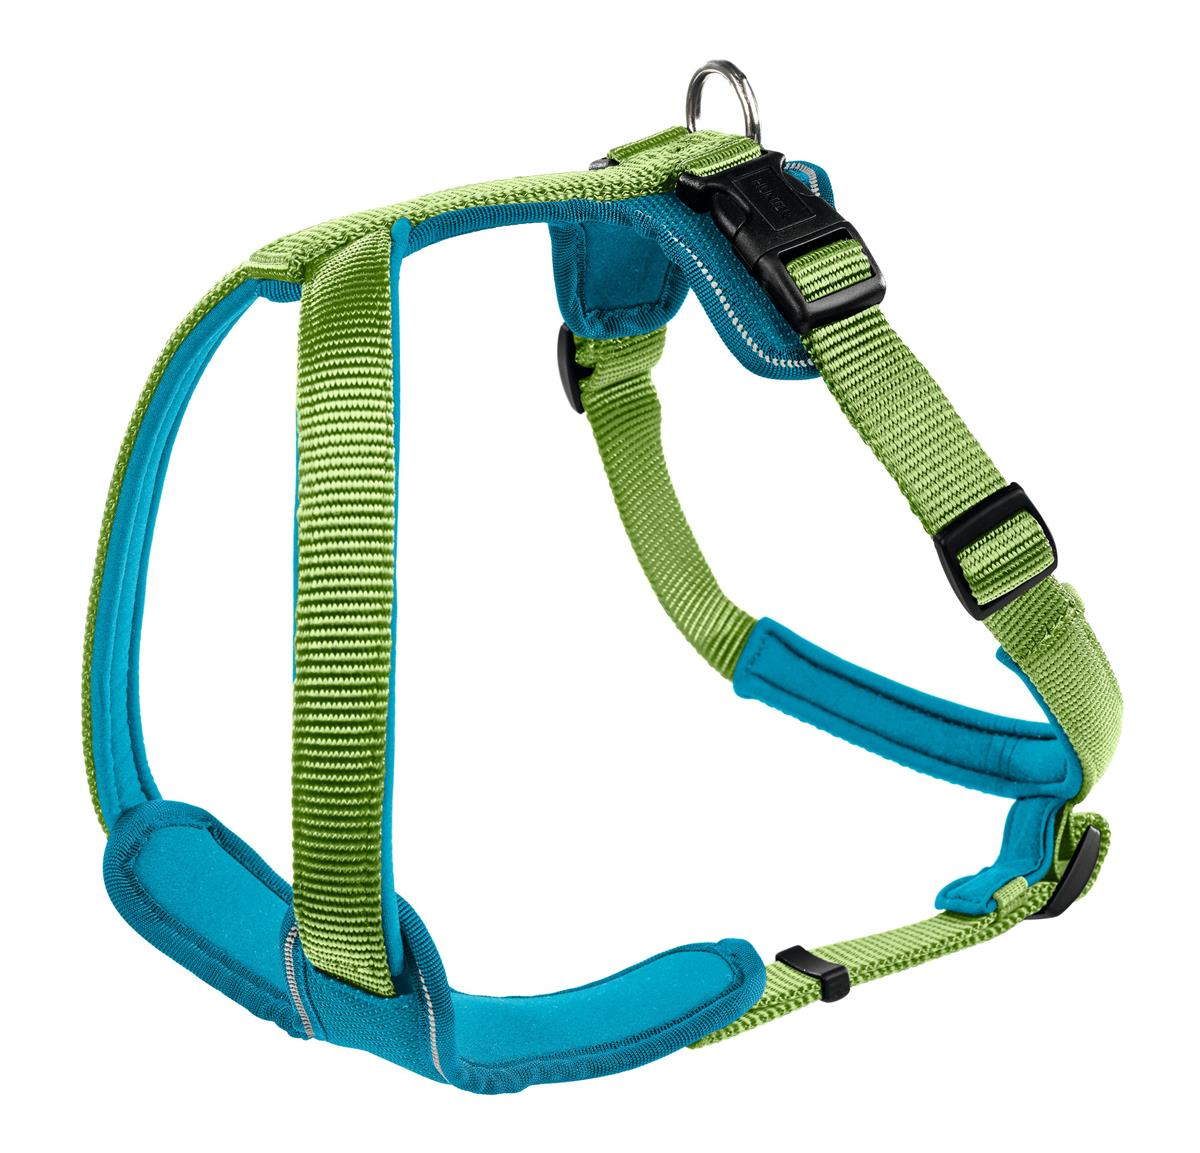 Harness Neopren XS 38-48 cm, 15 mm light green/teal